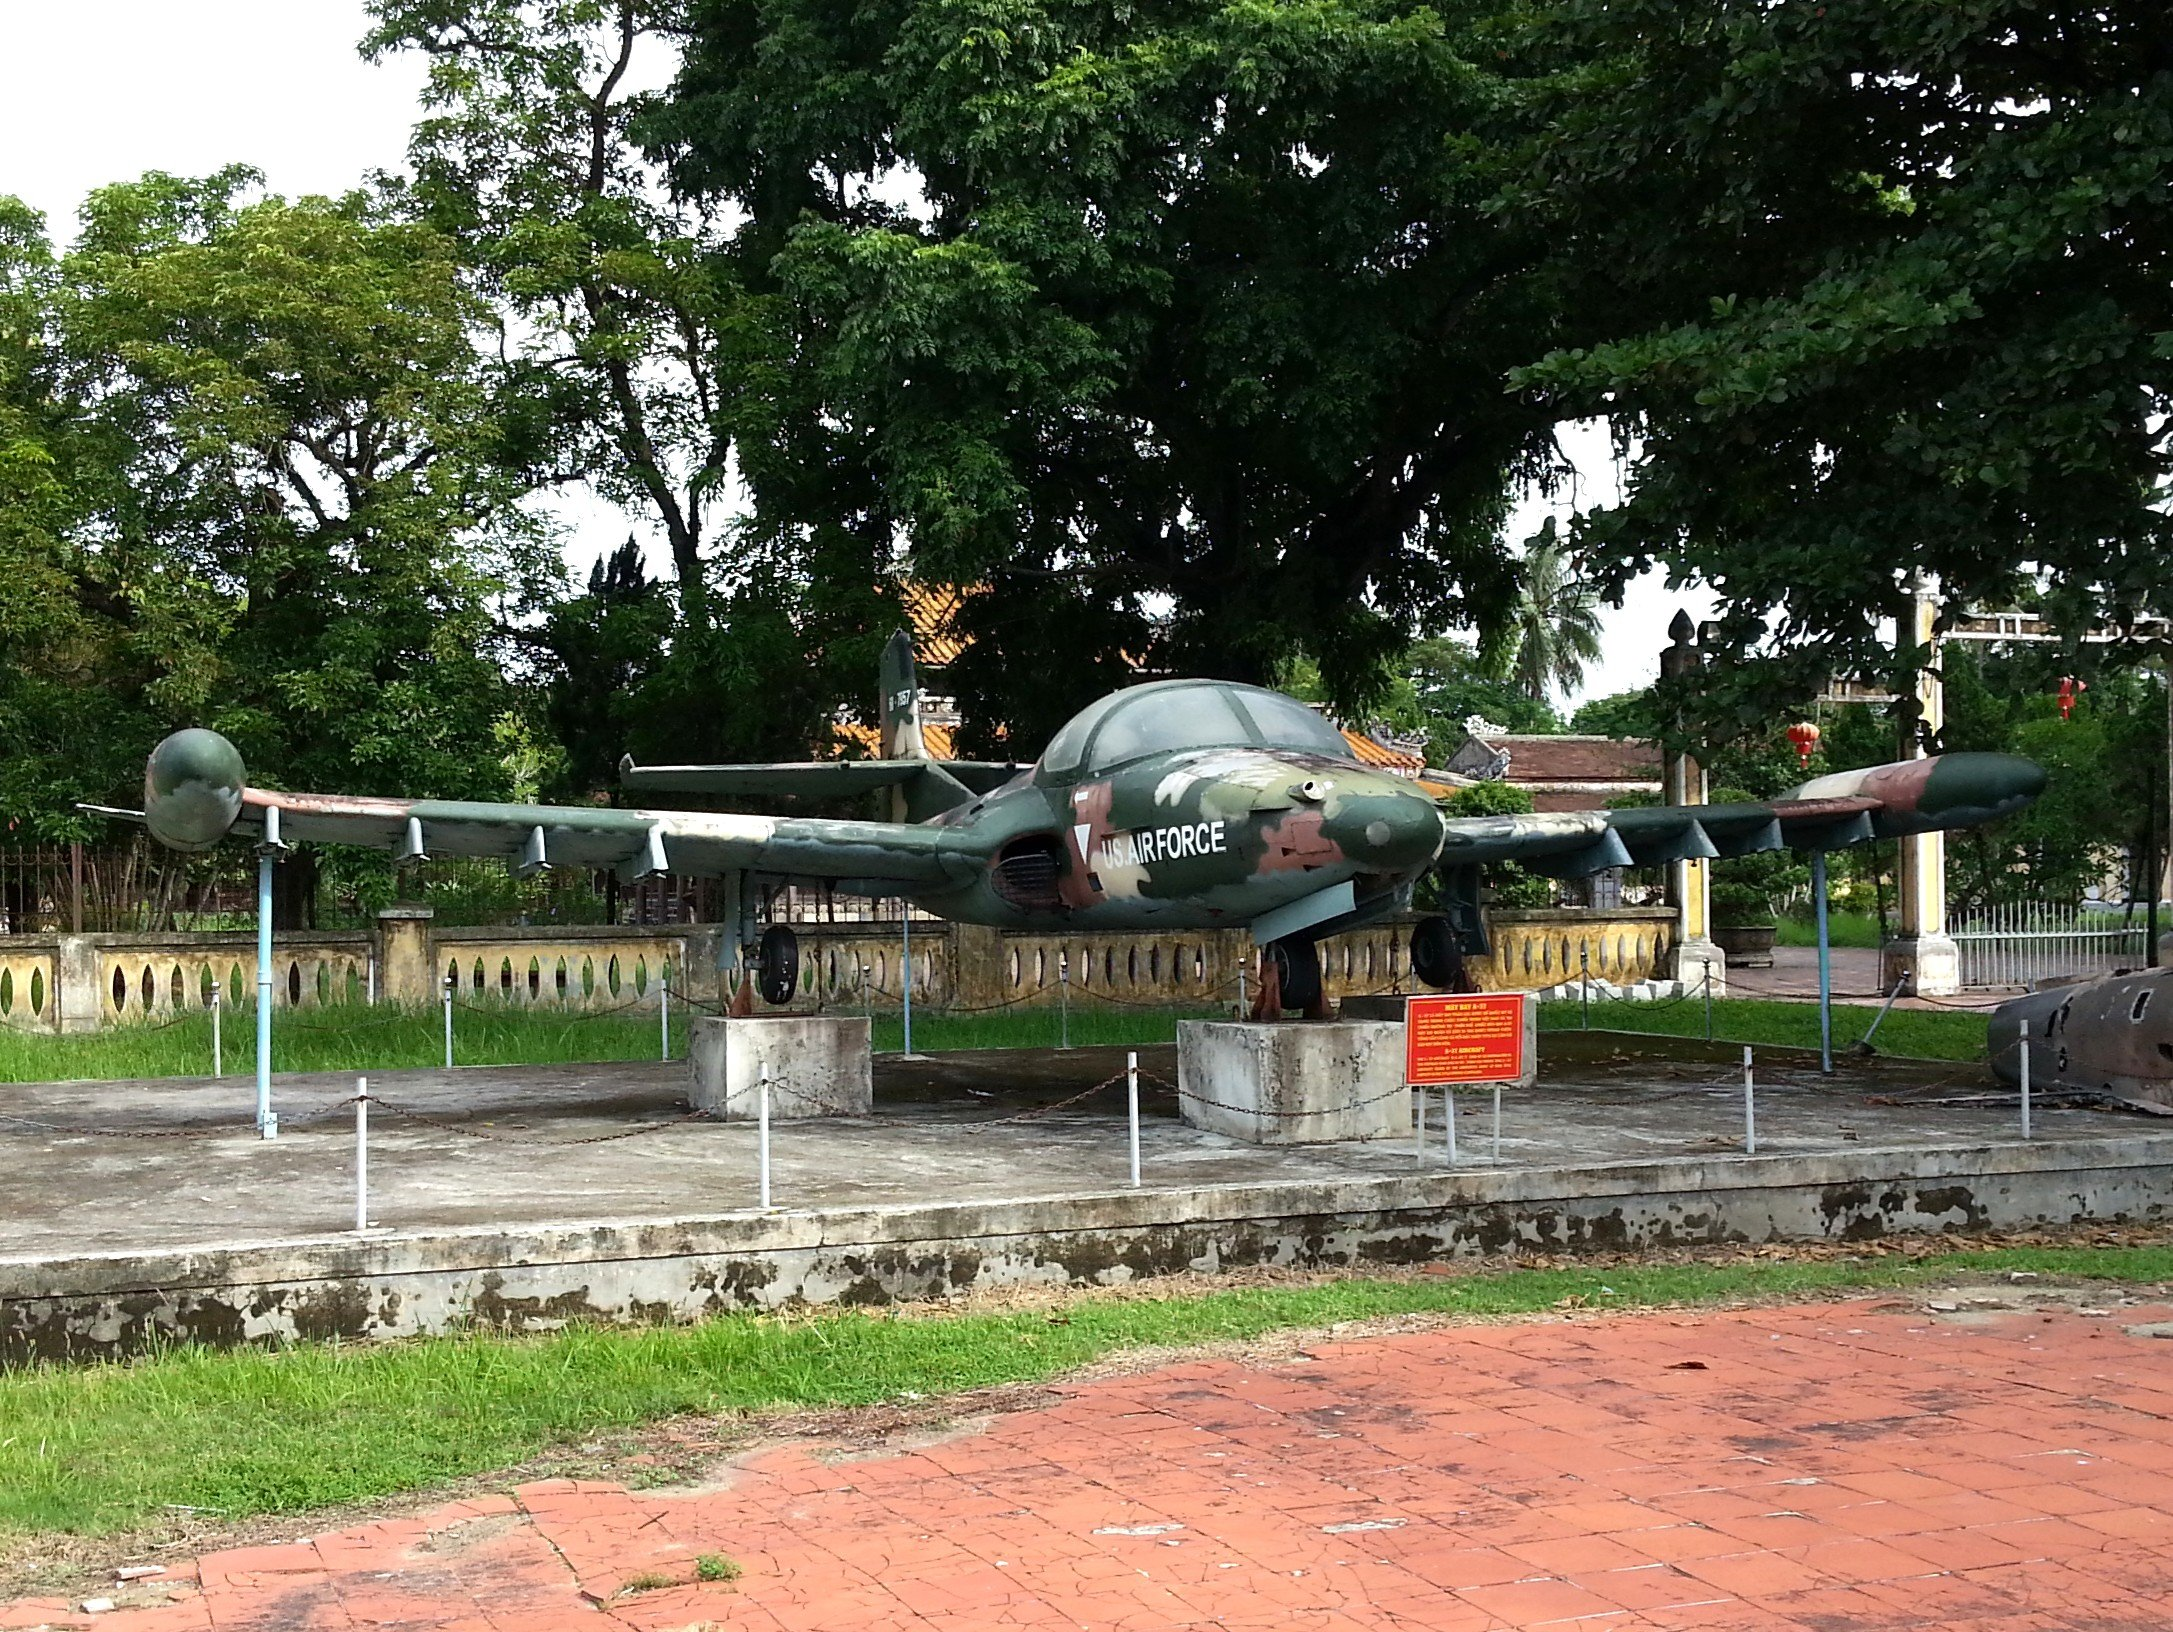 Cessna T-37 Tweet at Hue War Museum